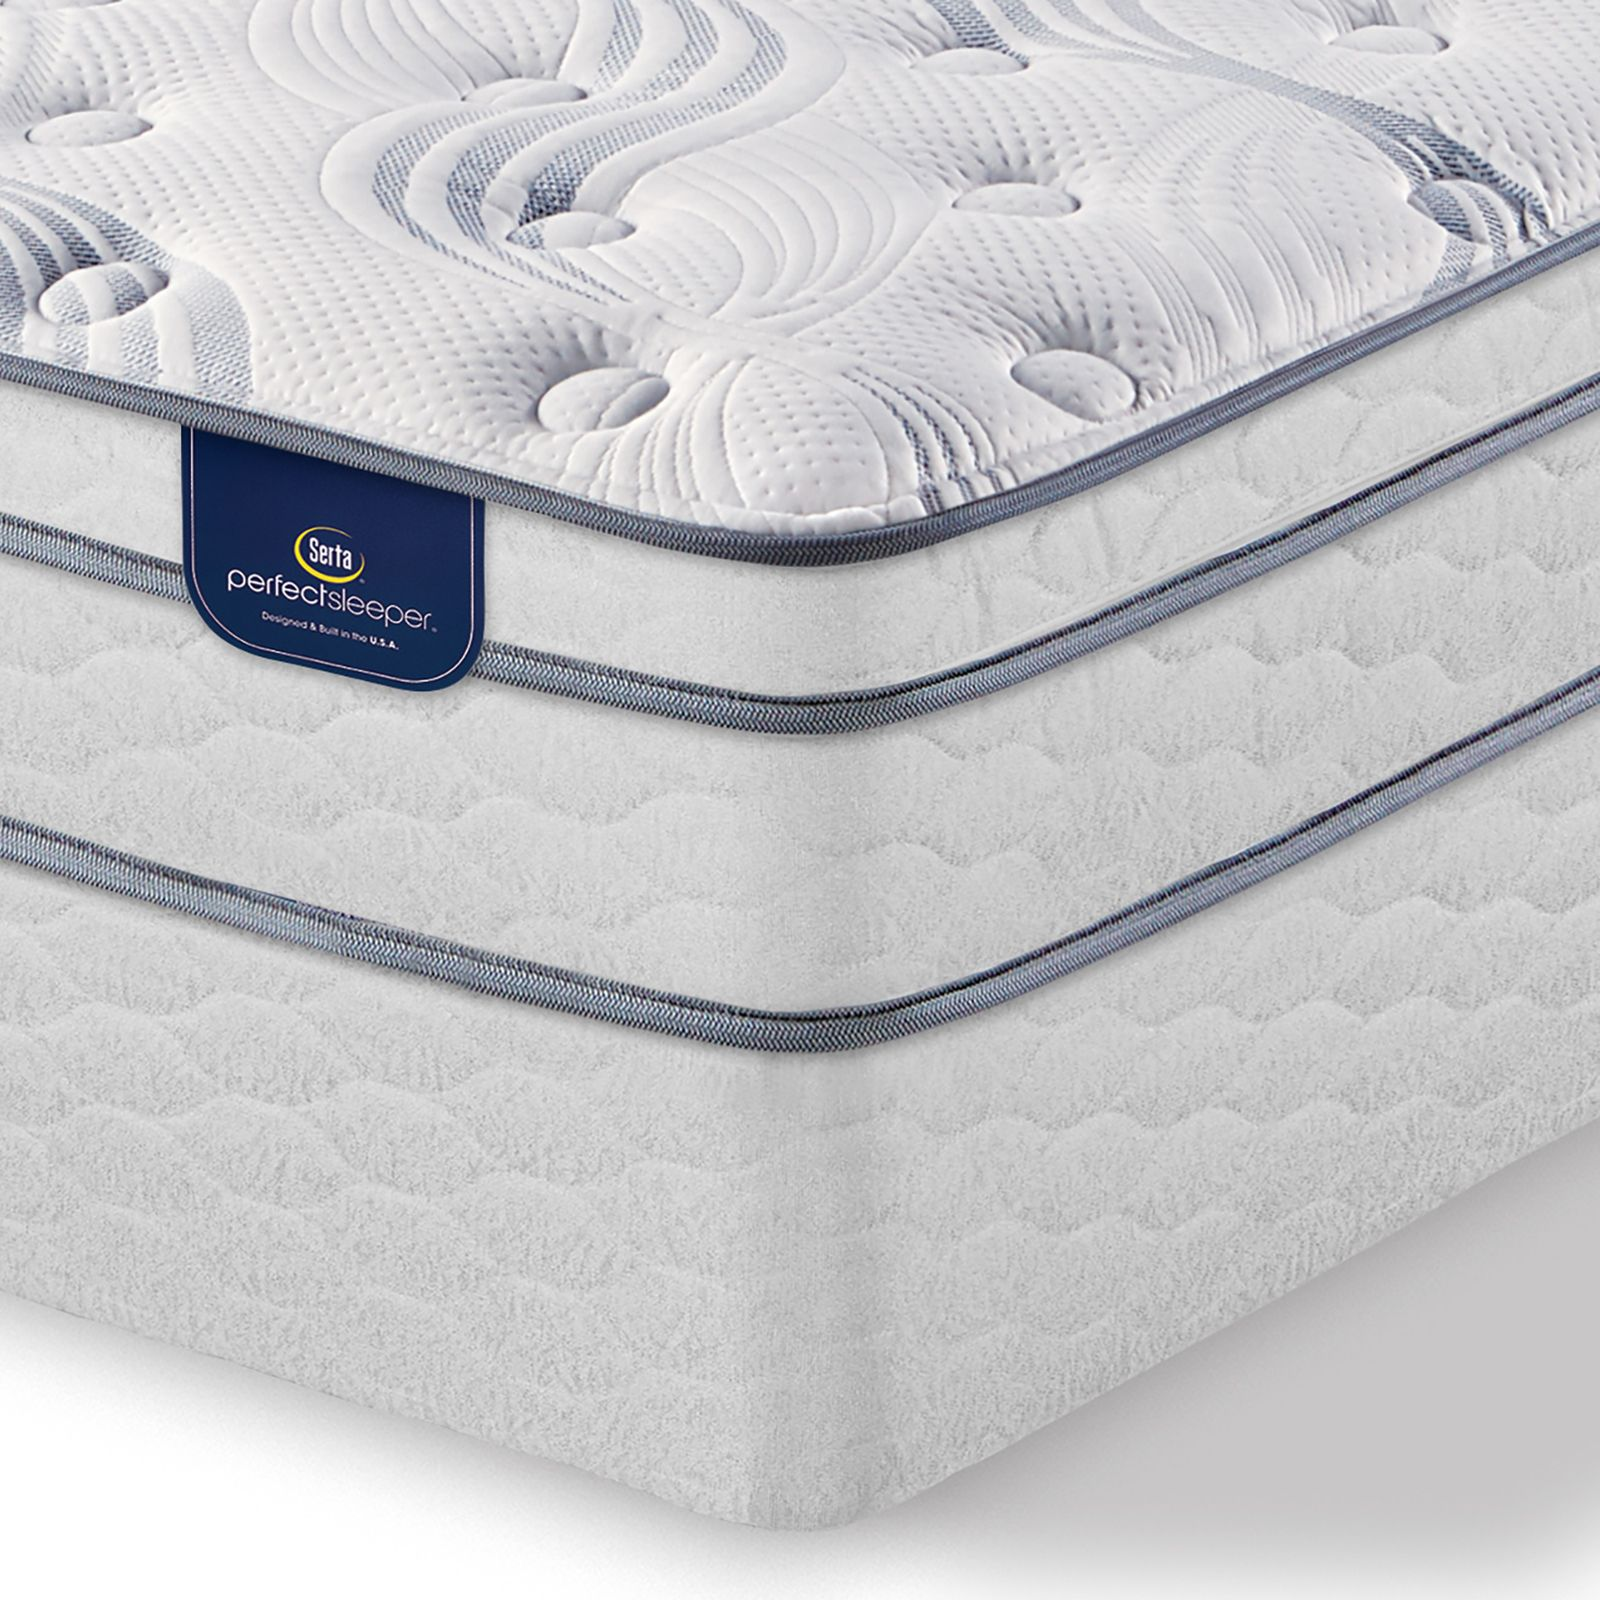 stay asleep throughout the night with the serta perfect sleeper